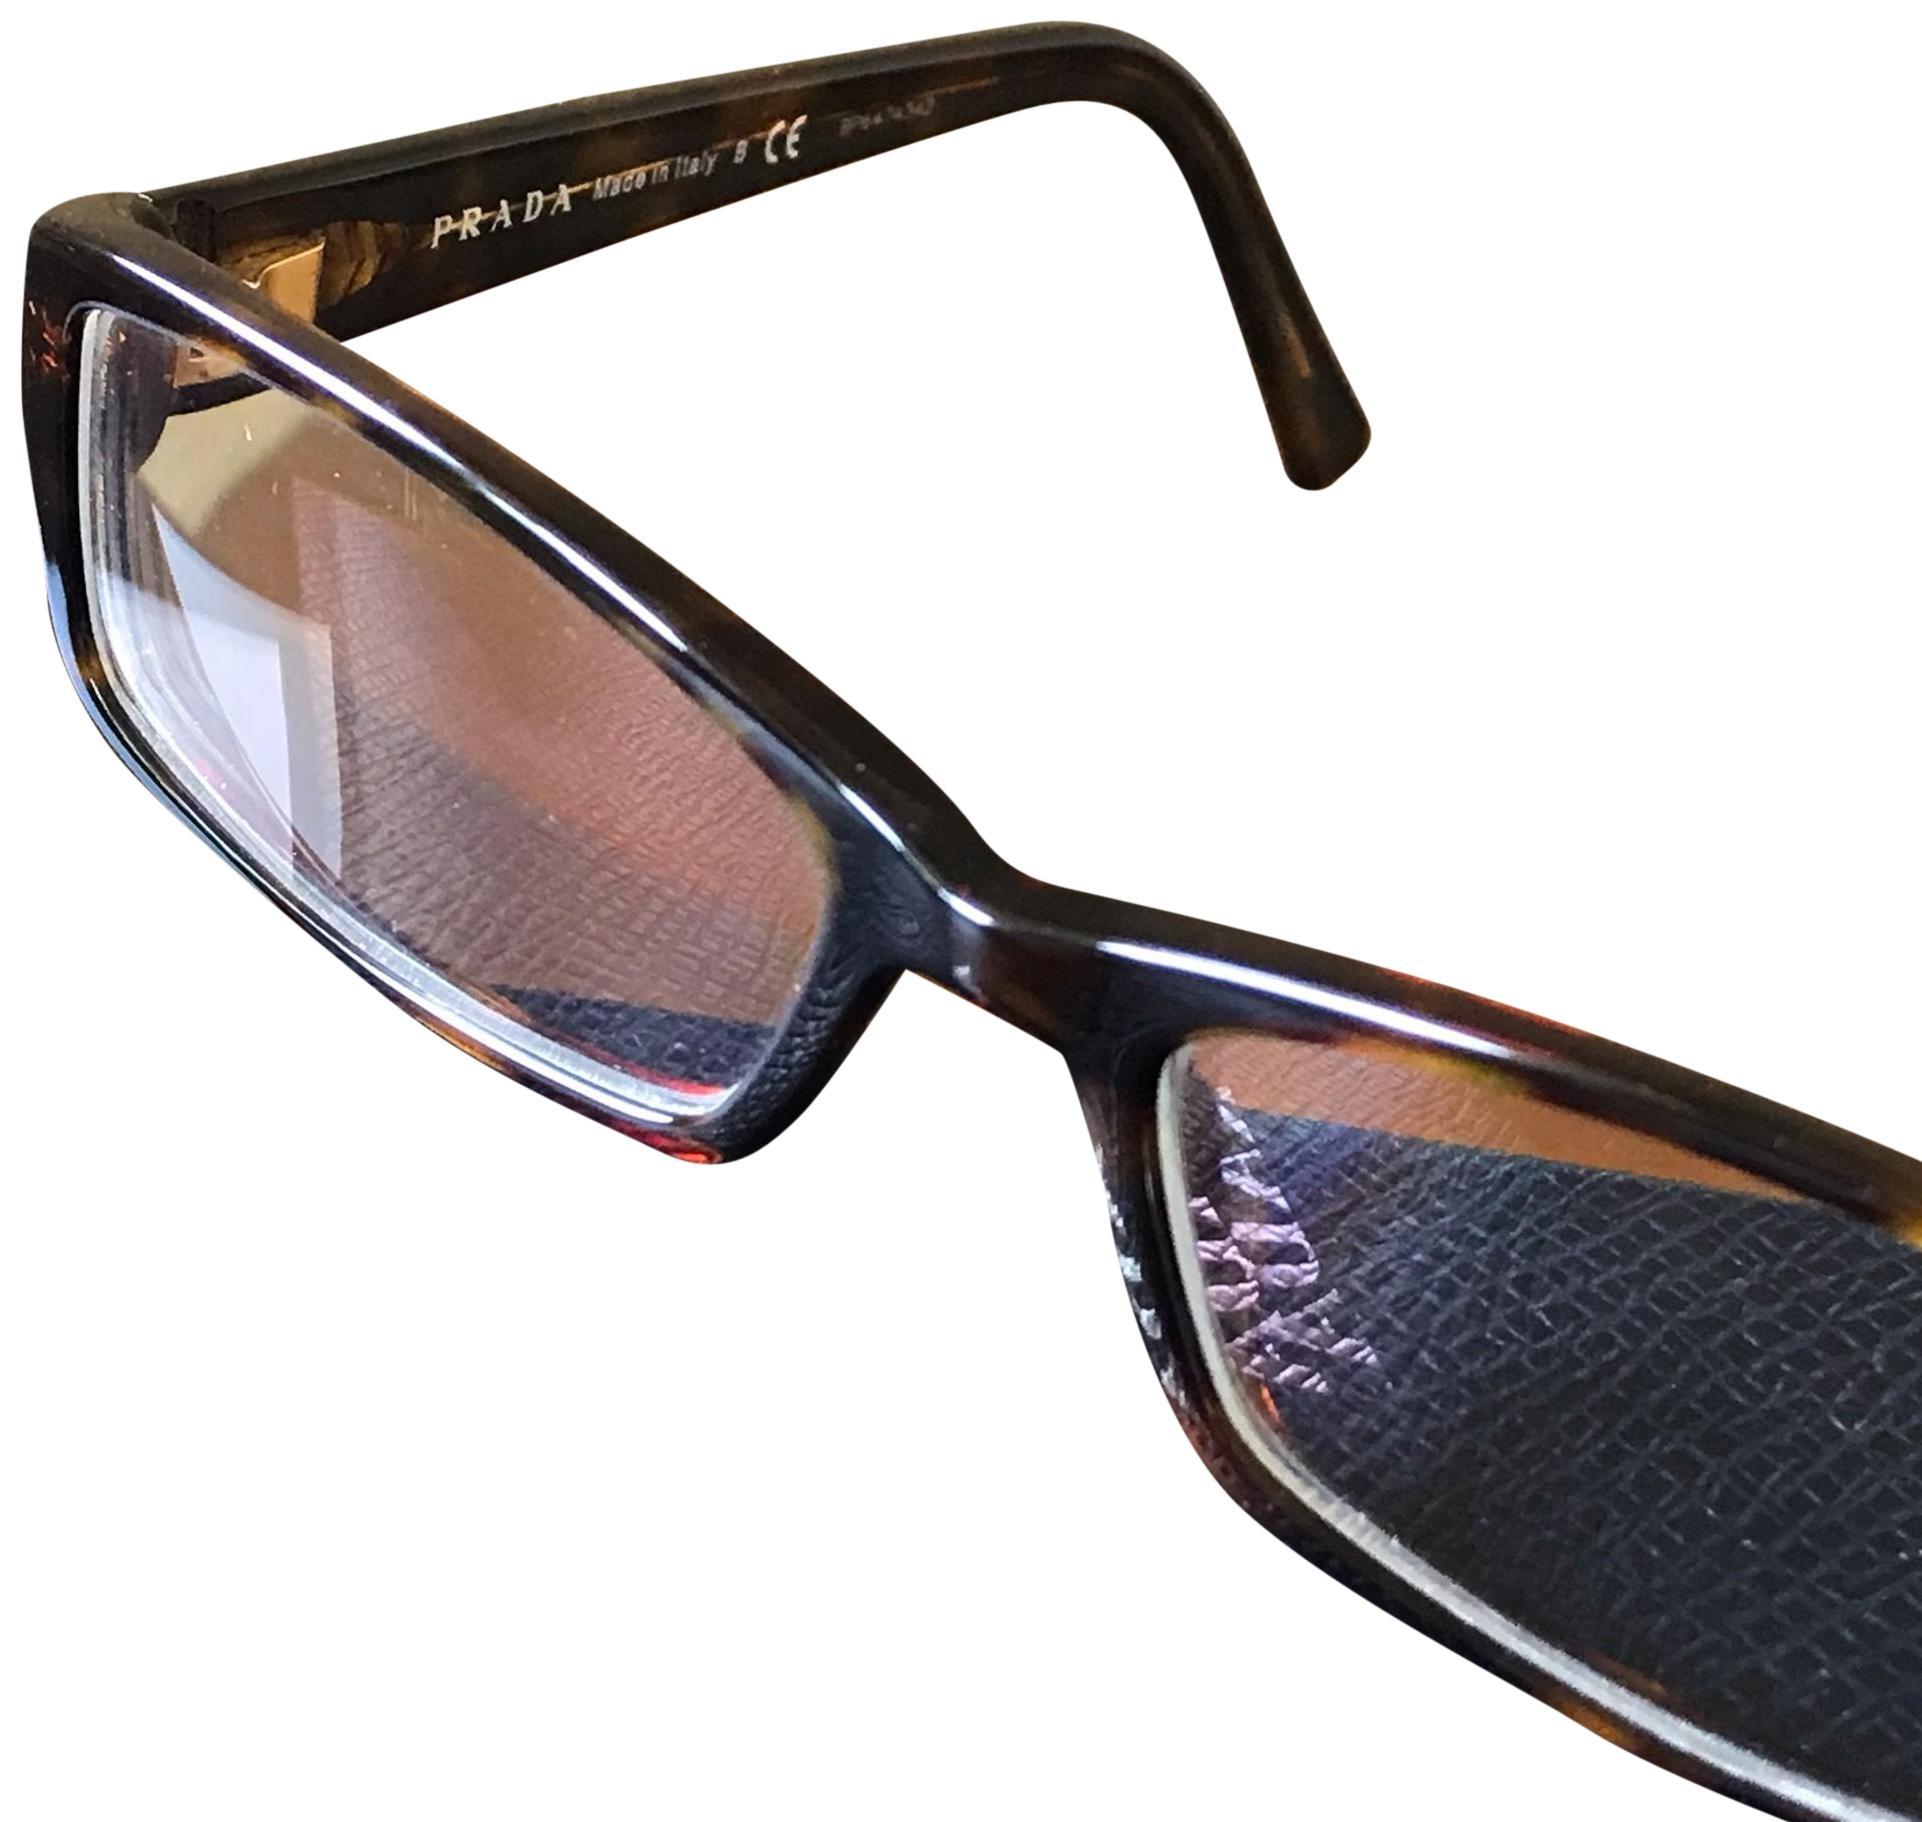 00983c7dc122b ... promo code prada sunglasses up to 70 off at tradesy 408f2 cd9c5